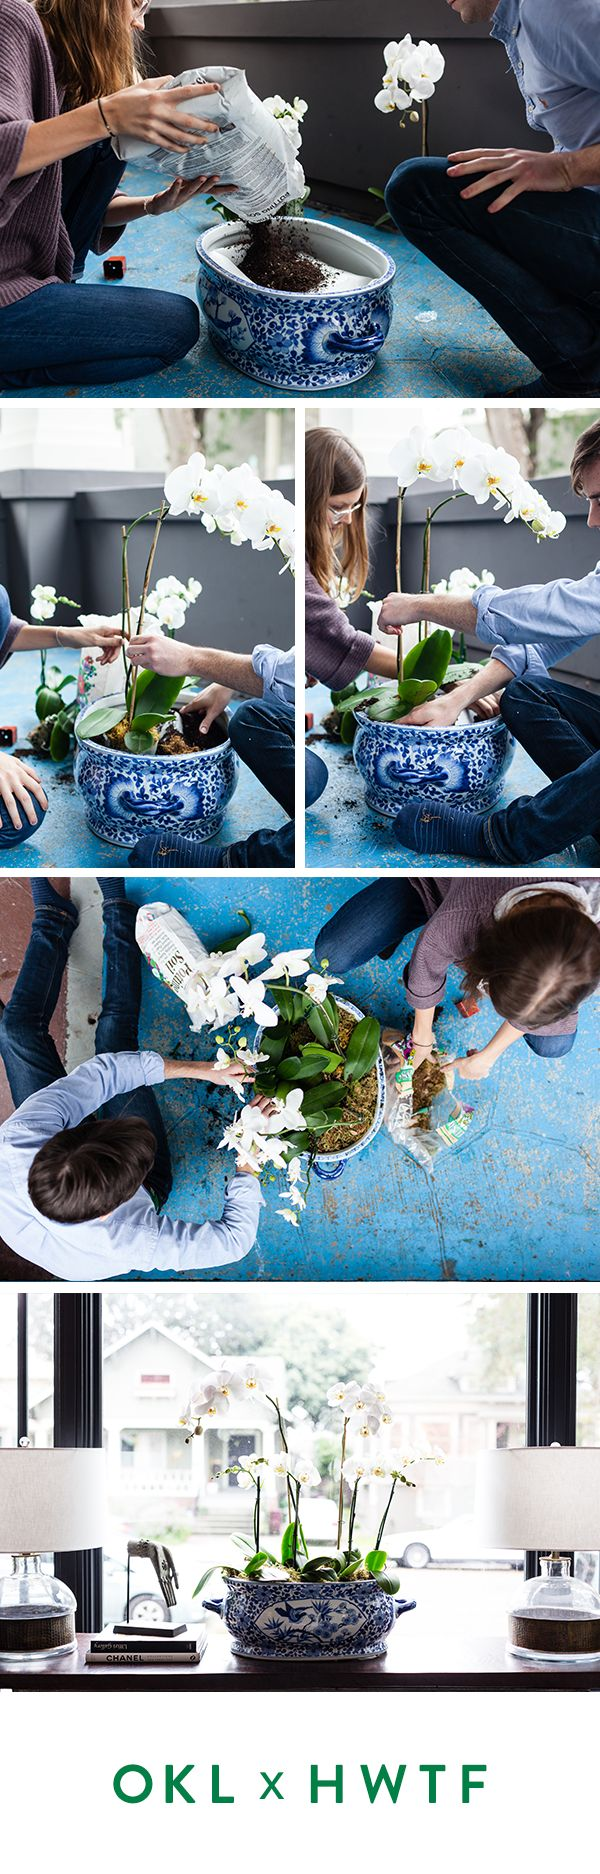 Try potting an orchid in a vintage chinoiserie vase! To create their orchid arrangement, Kate and Alex formed channels in the basin of a large chinoiserie tureen with Styrofoam, then tucked the orchids, still in their plastic containers, in the holes. They topped everything off with moss to hide the plastic.